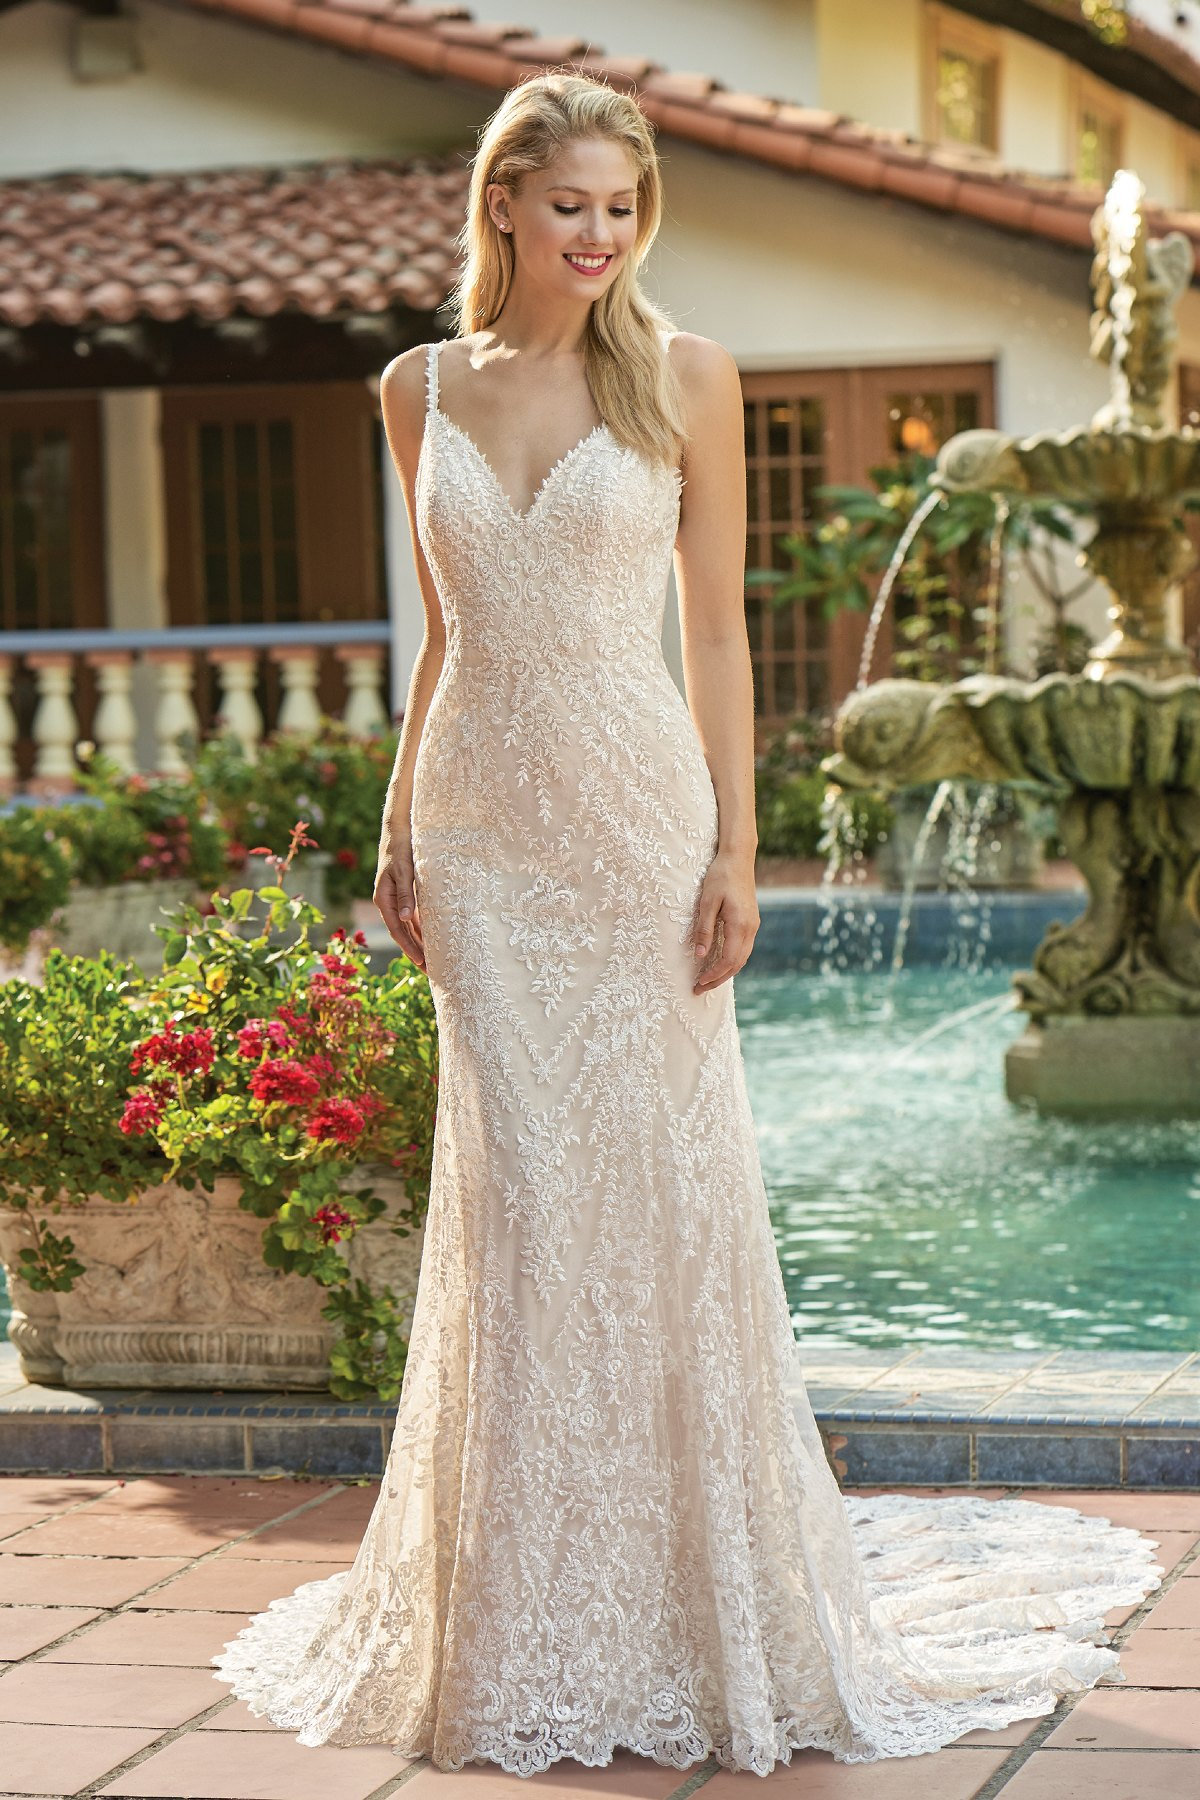 F211008 Rustic Embroidered Lace Wedding Dress With Sweetheart Neckline